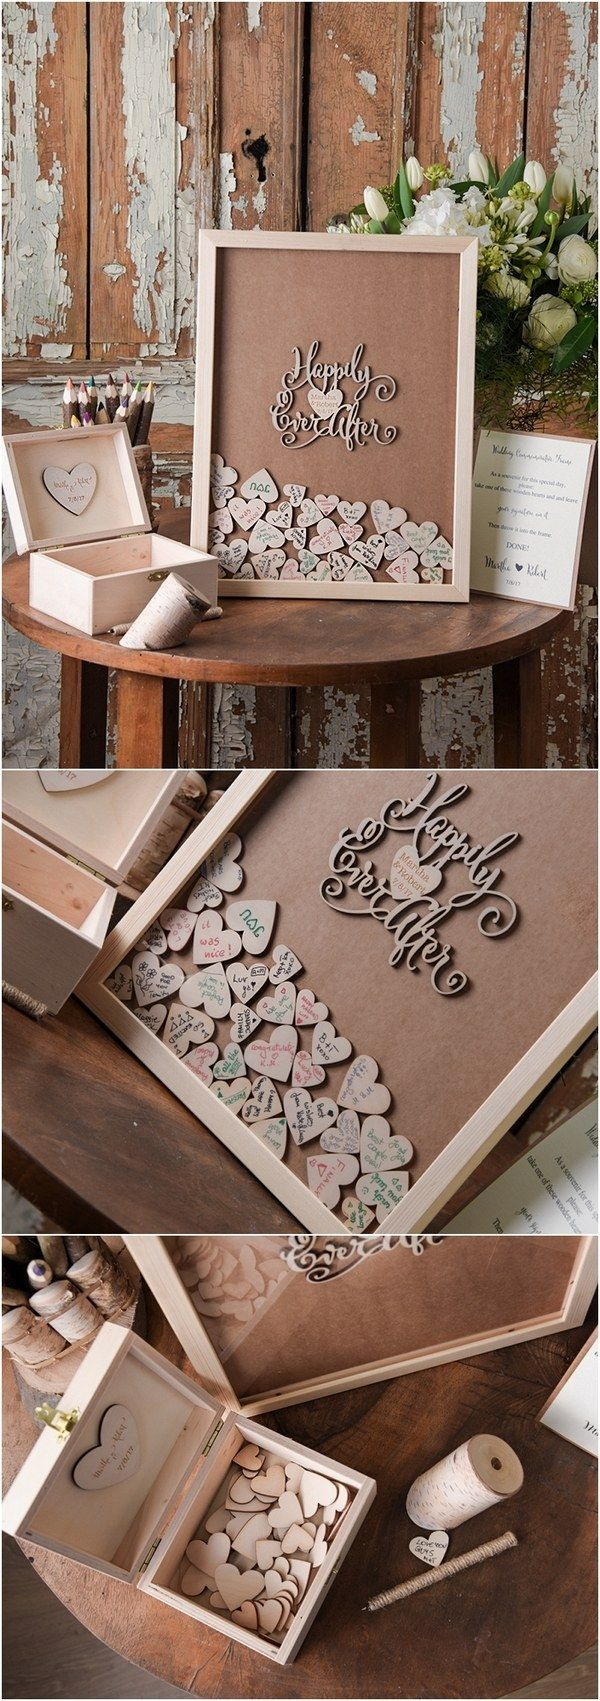 Scrapbook ideas wedding guest book